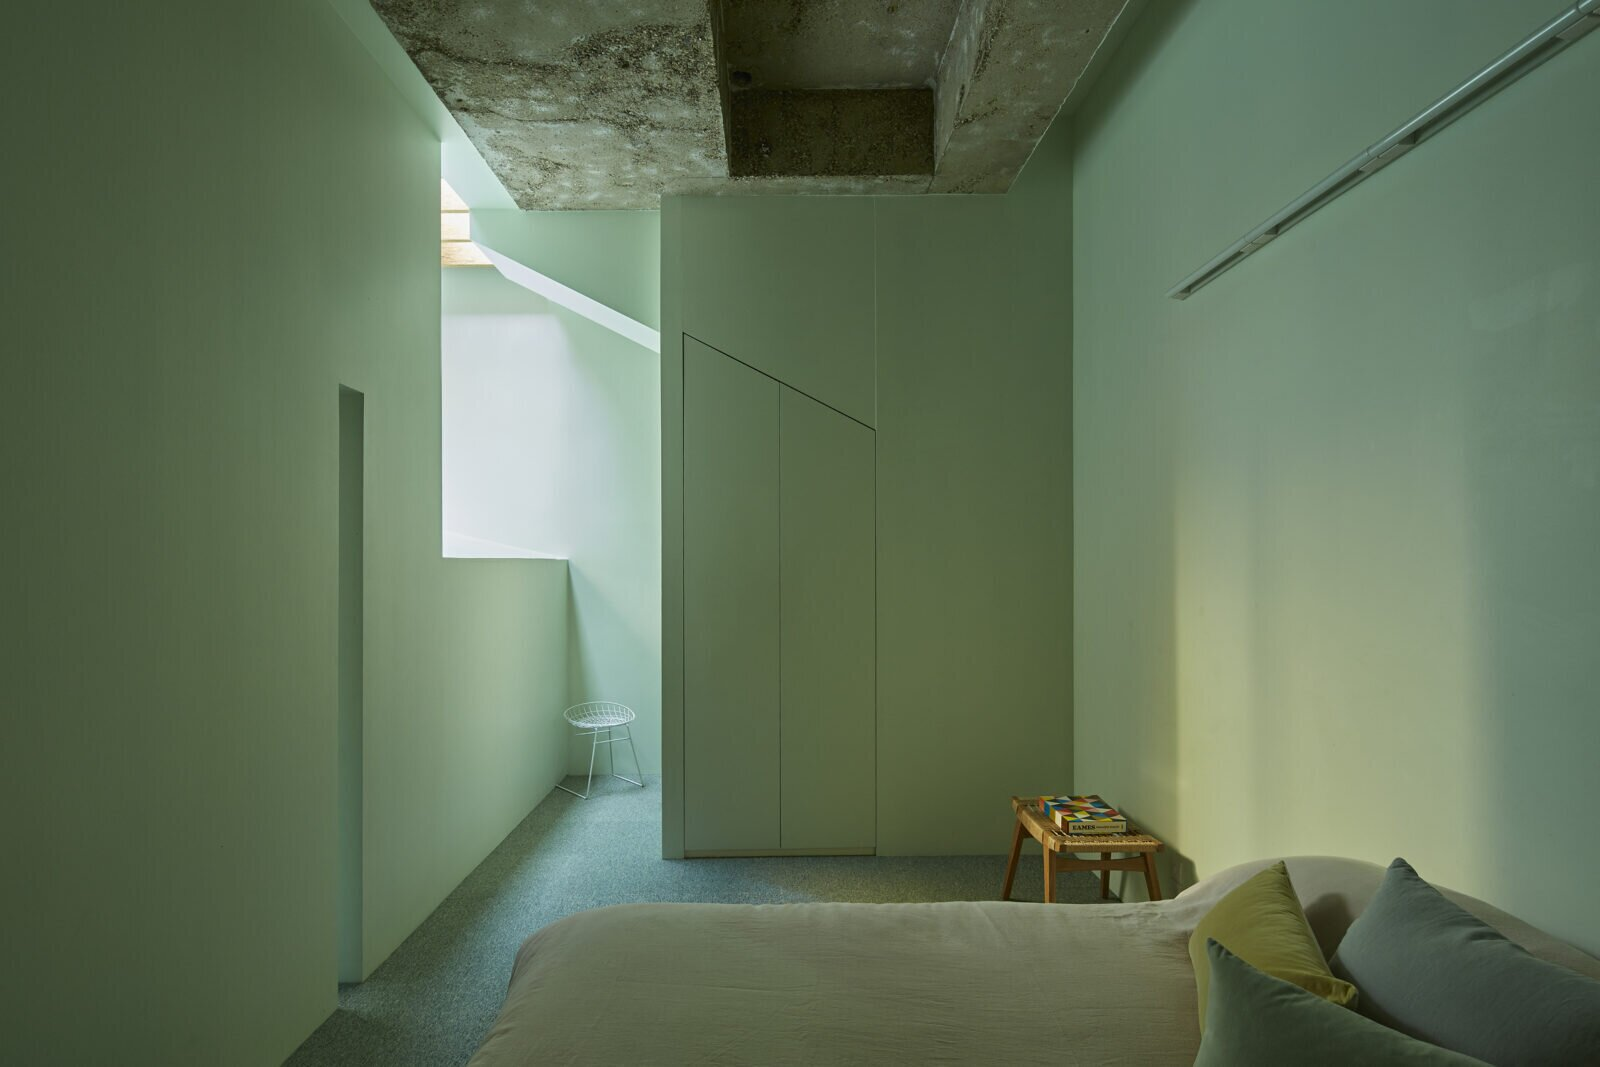 Guest bedroom in the Lost House by David Adjaye